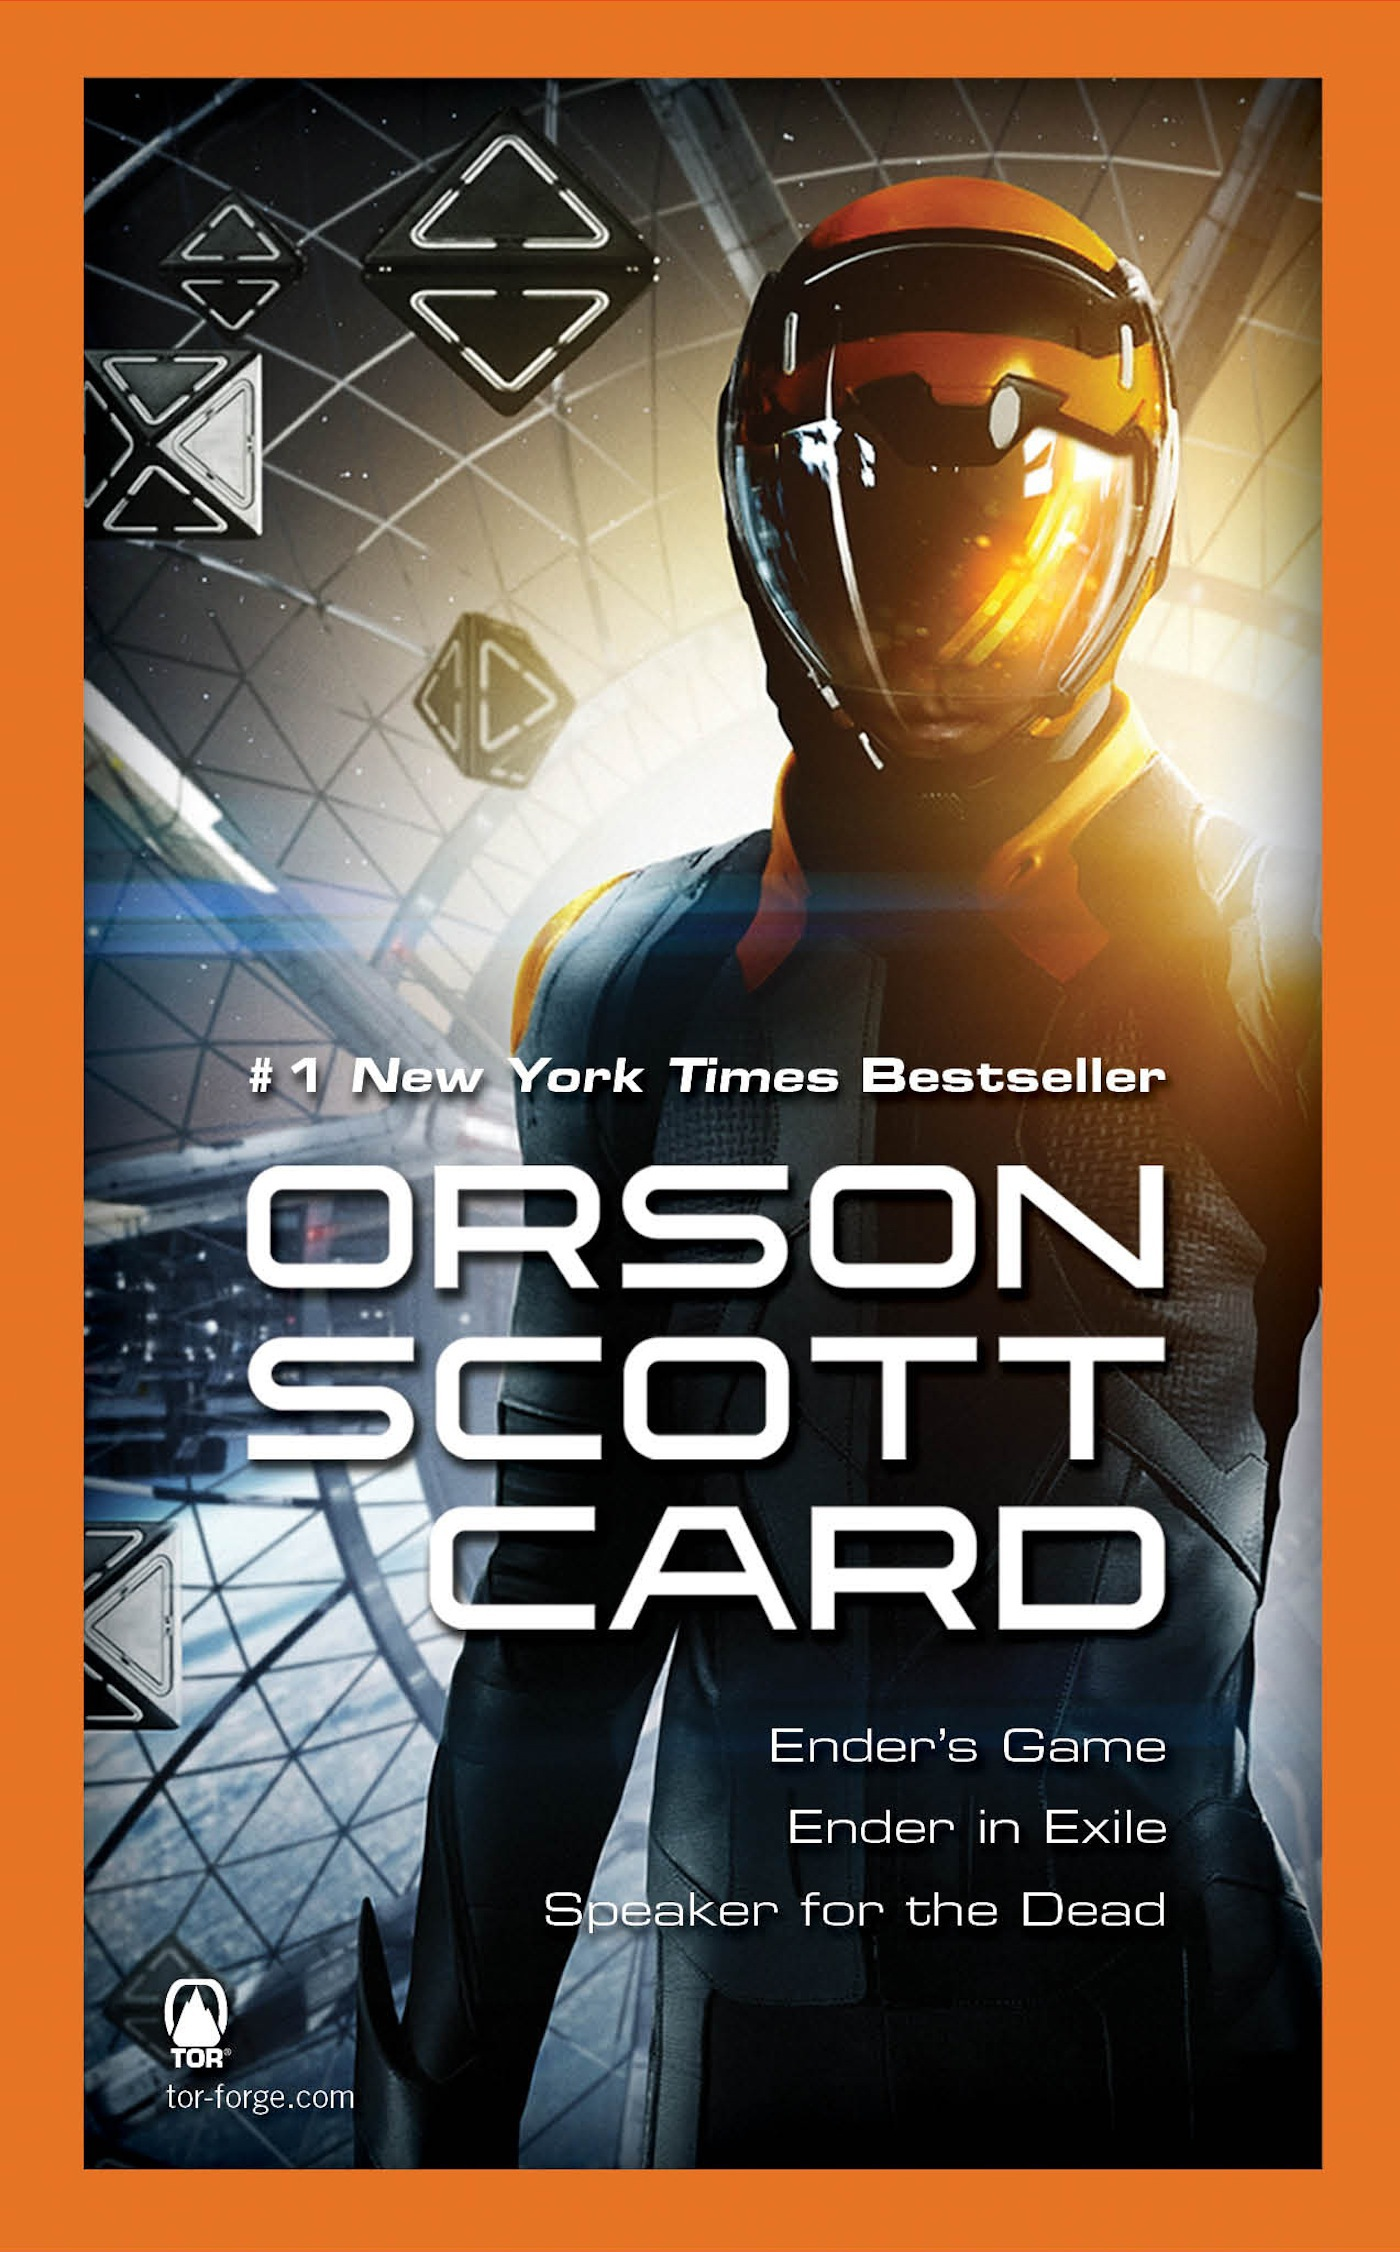 an analysis of the novel enders shadow by orison scott card Ender's shadow summary & study guide includes comprehensive information and analysis to help you understand the book free quiz on ender's shadow by orson scott card.